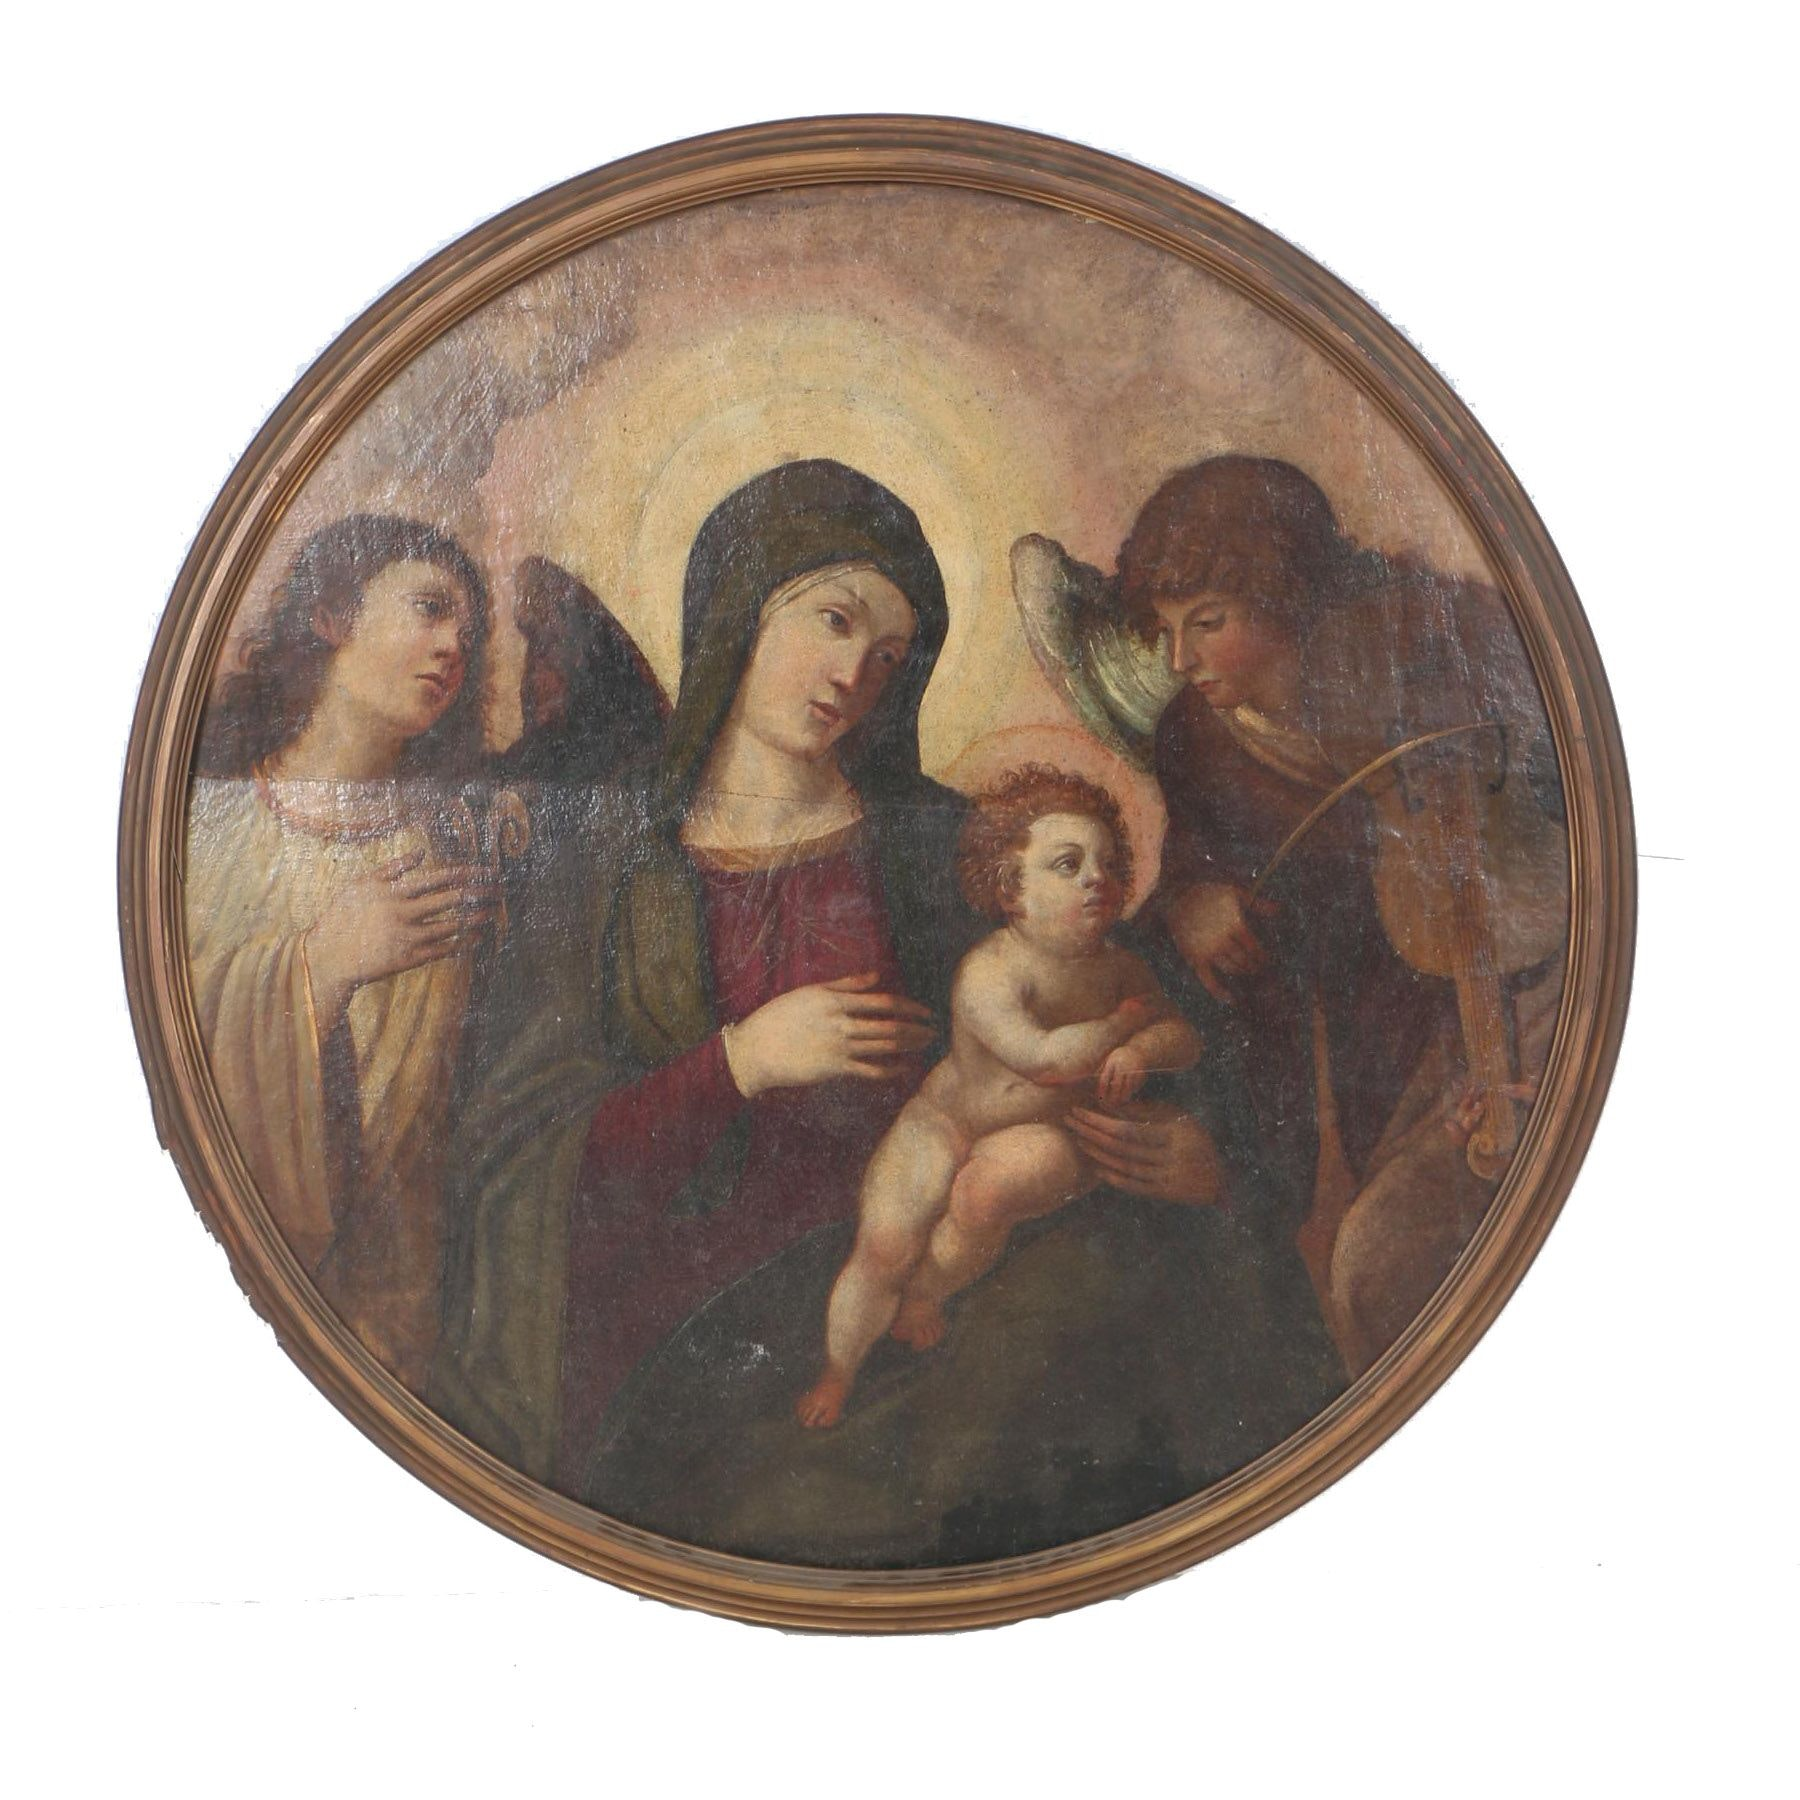 Antique Original Oil on Board of the Madonna and Child Surrounded by Angels